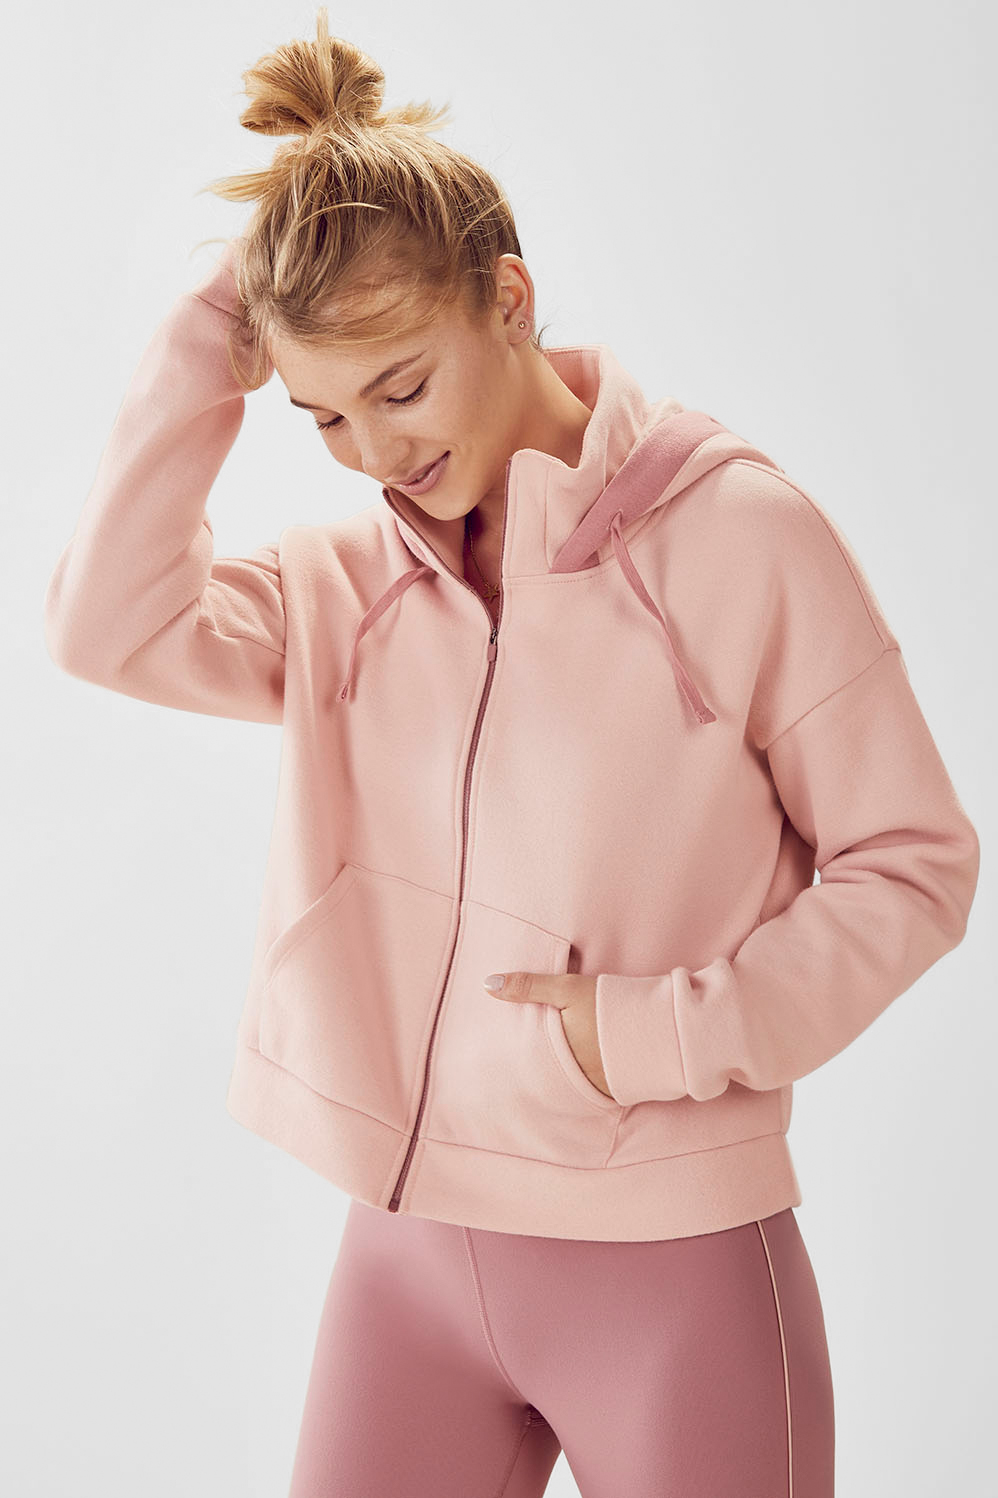 Fabletics Hoodies Valeria Cropped Hoodie Womens Pink Size 1X Look cool and stay warm at the same time by layering on our cropped hoodie with a sporty kangaroo pocket and slouchy dropped shoulders. Kangaroo Pocket, Cropped Silhouette, Hood with Adjustable Drawcord, Dropped Shoulders, Cozy Brushed Fleece, Fit. Relaxed Fit, Removable Cups. N, Built-In Bra. N, Length. Hip, Fabric Content. 65% COTTON/35% POLYESTER